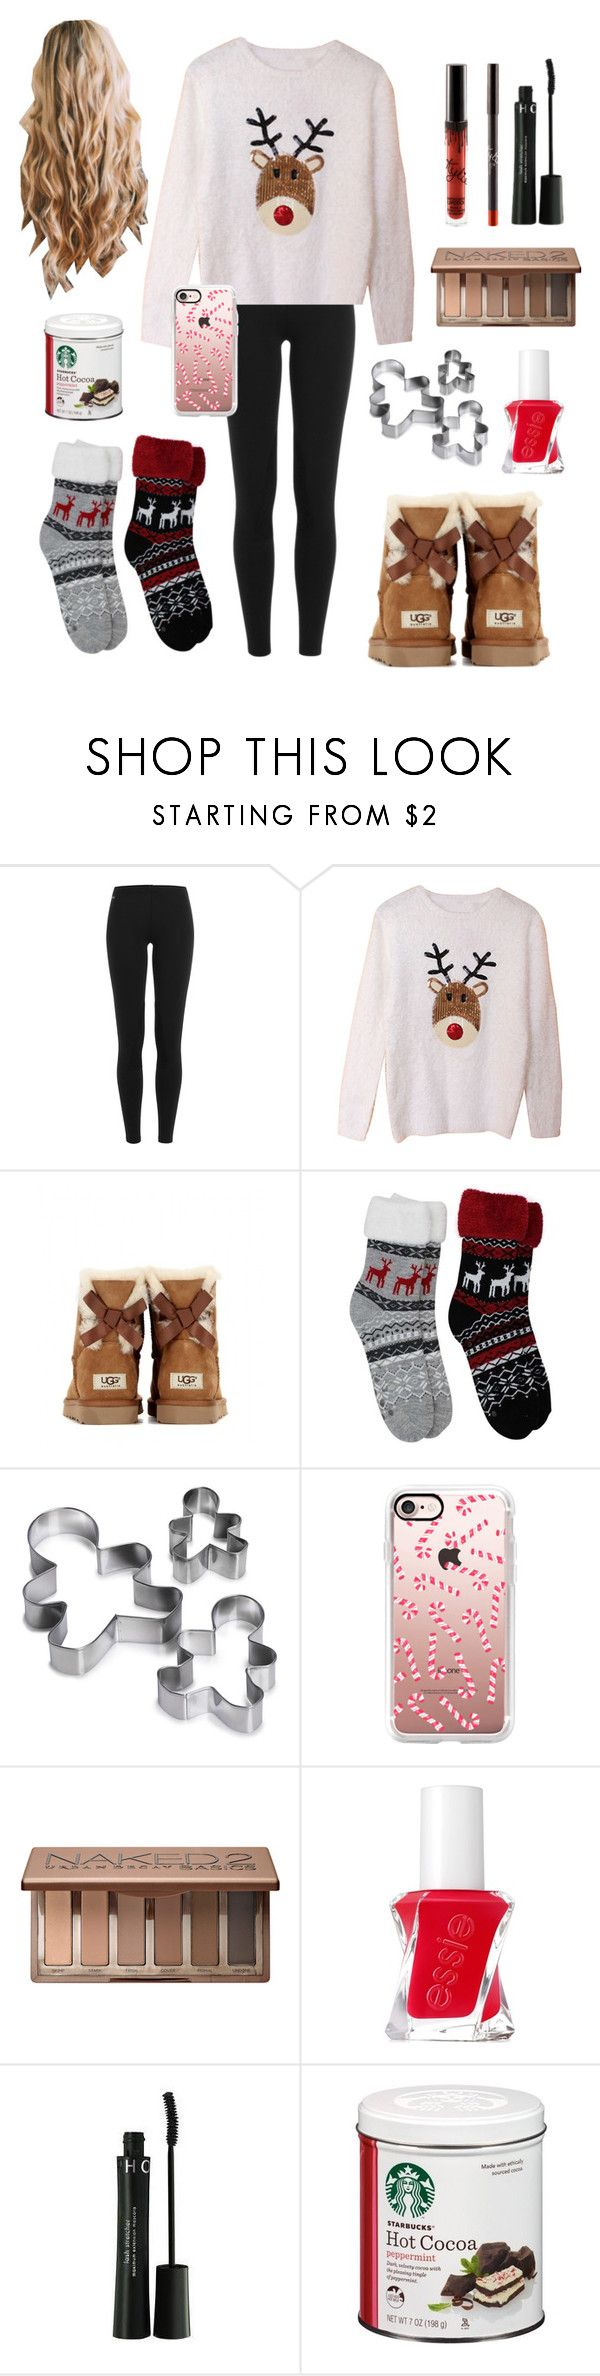 """2 days till Christmas🎅🏼🎄"" by laurenek006 ❤ liked on Polyvore featuring Polo Ralph Lauren, UGG Australia, Casetify, Urban Decay, Essie and Sephora Collection"